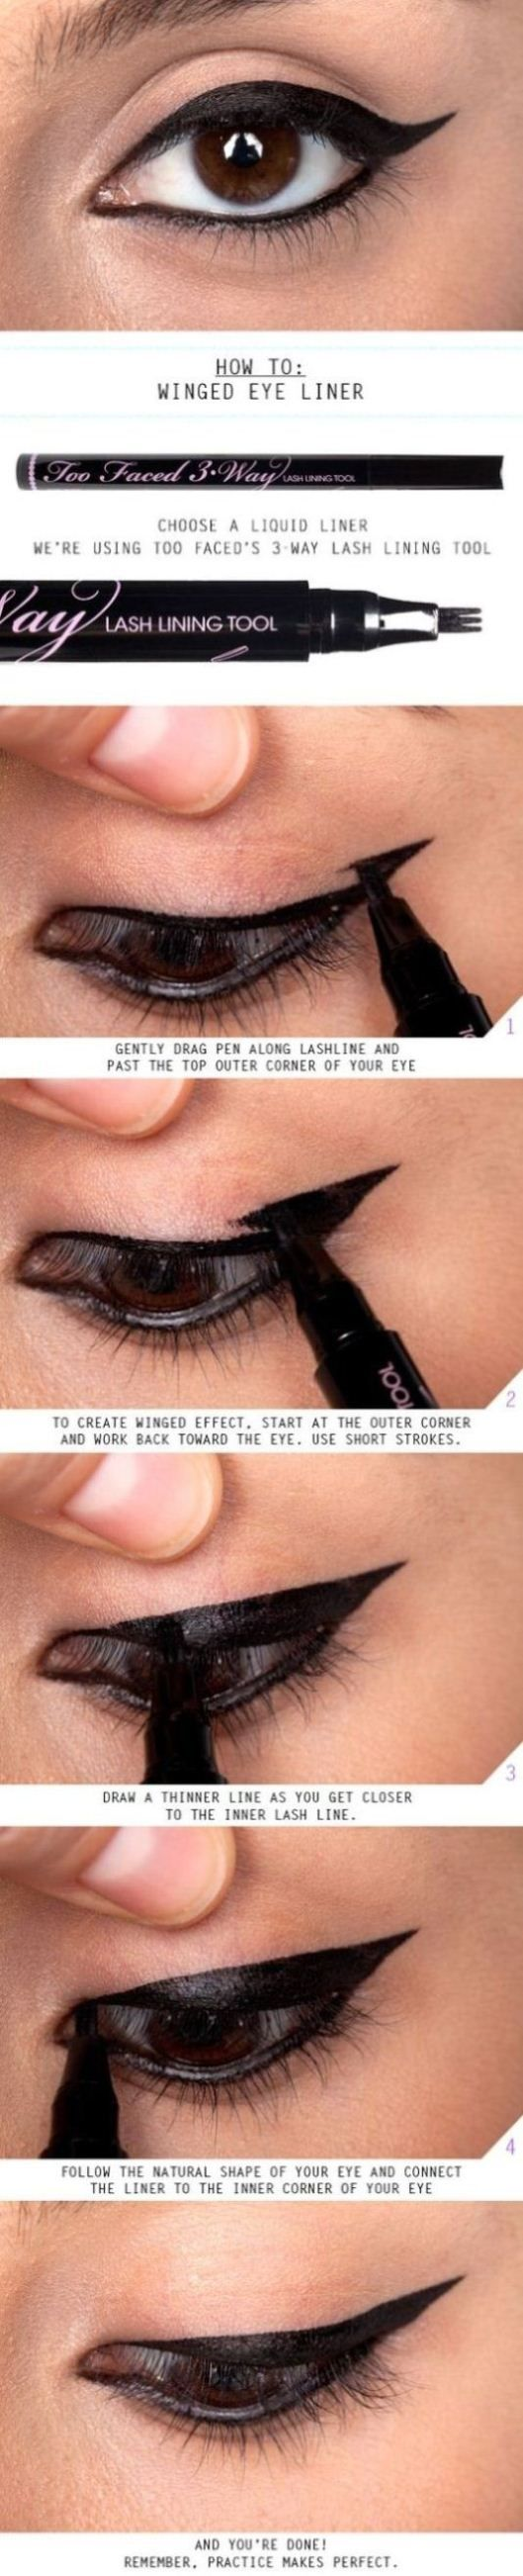 I remember the first time I was shown how to apply my eye liner this way by a friend. In 2003. I was in the parking lot of a club in Louisville Kentucky, before seeing a concert that I had already seen the night before in Indianapolis Indiana. :)